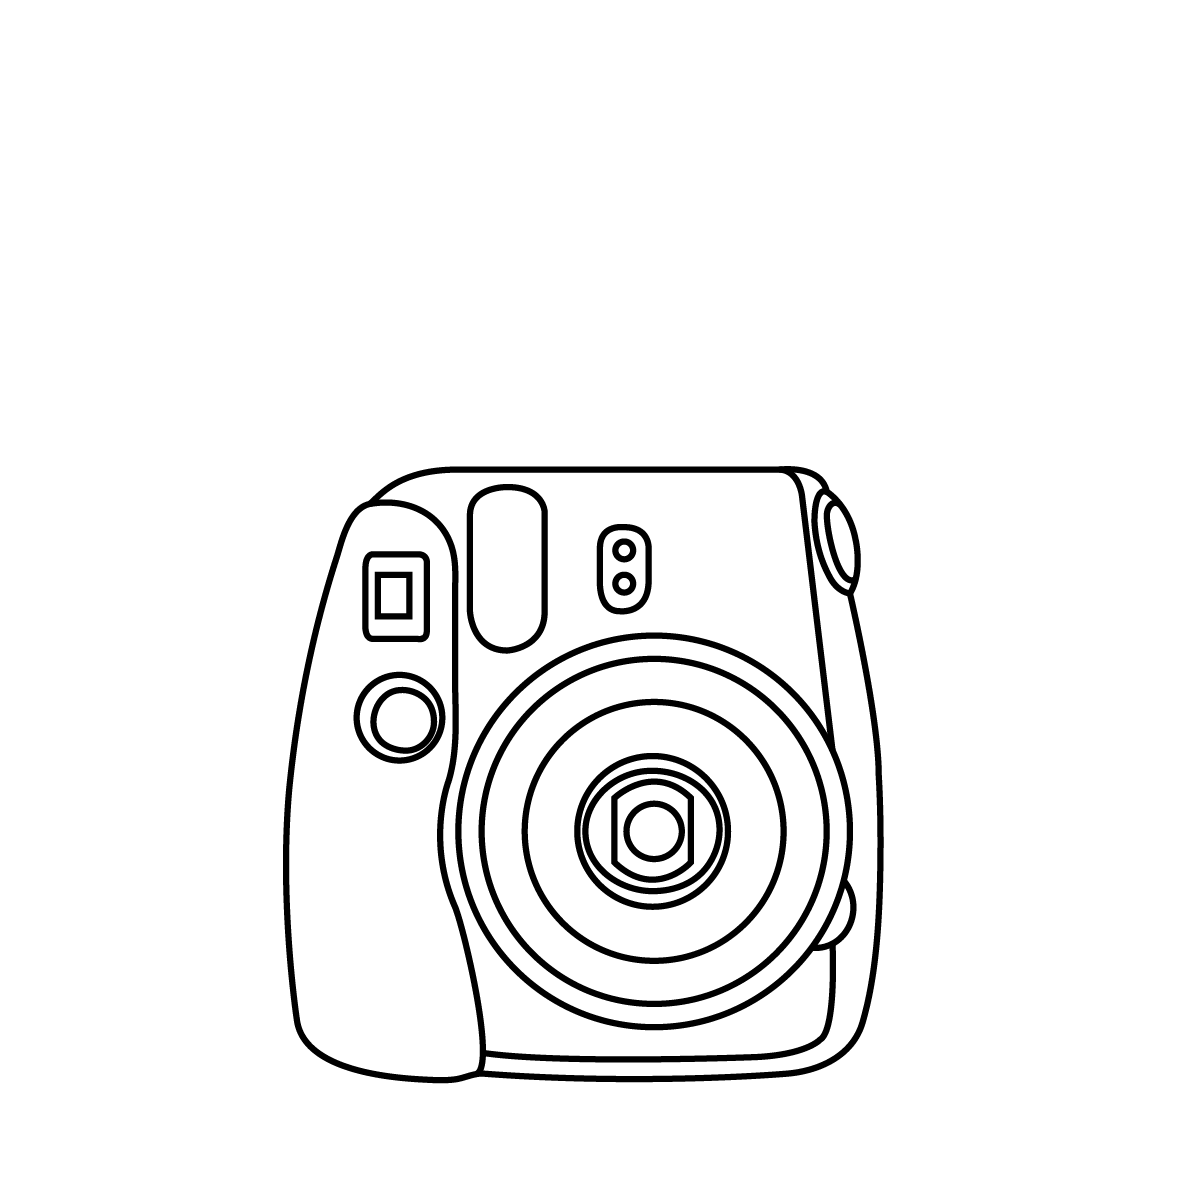 collection of mini. Photo clipart instax